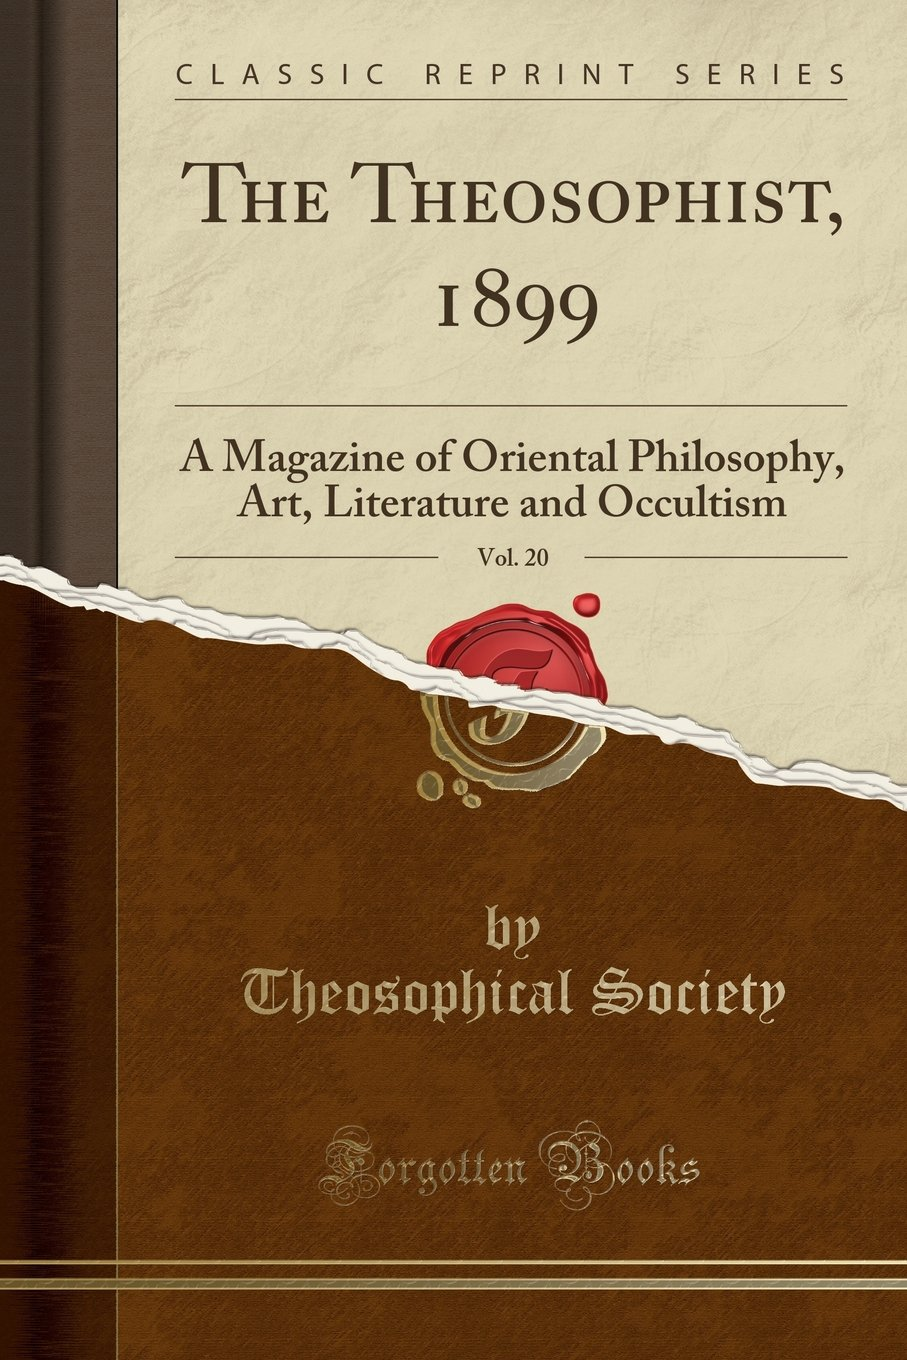 The Theosophist, 1899, Vol. 20: A Magazine of Oriental Philosophy, Art, Literature and Occultism (Classic Reprint) ebook